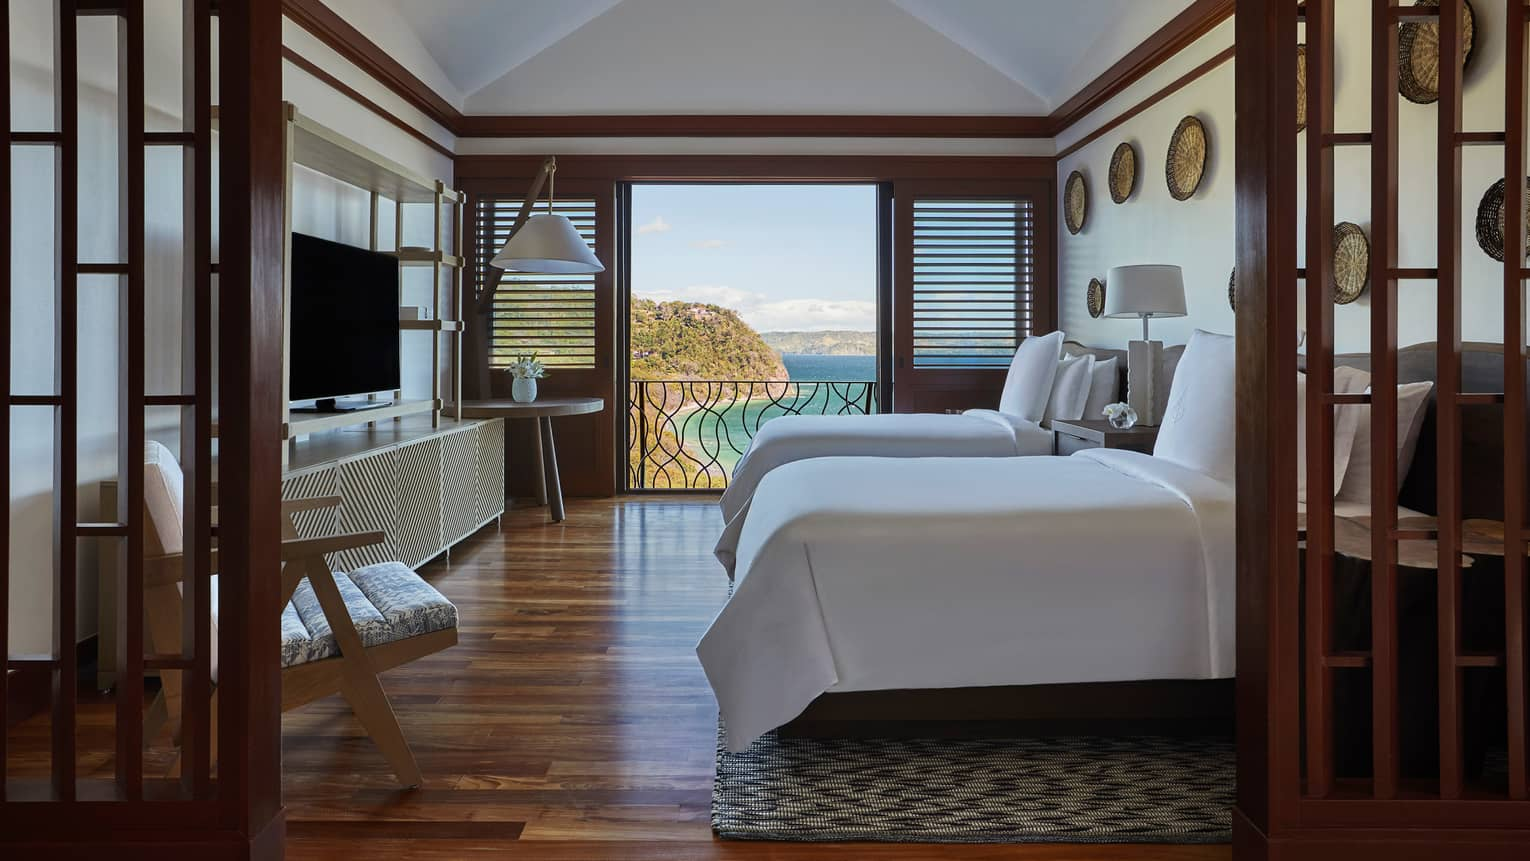 Canopy Suite Double Beds with Open Door Views of the Ocean